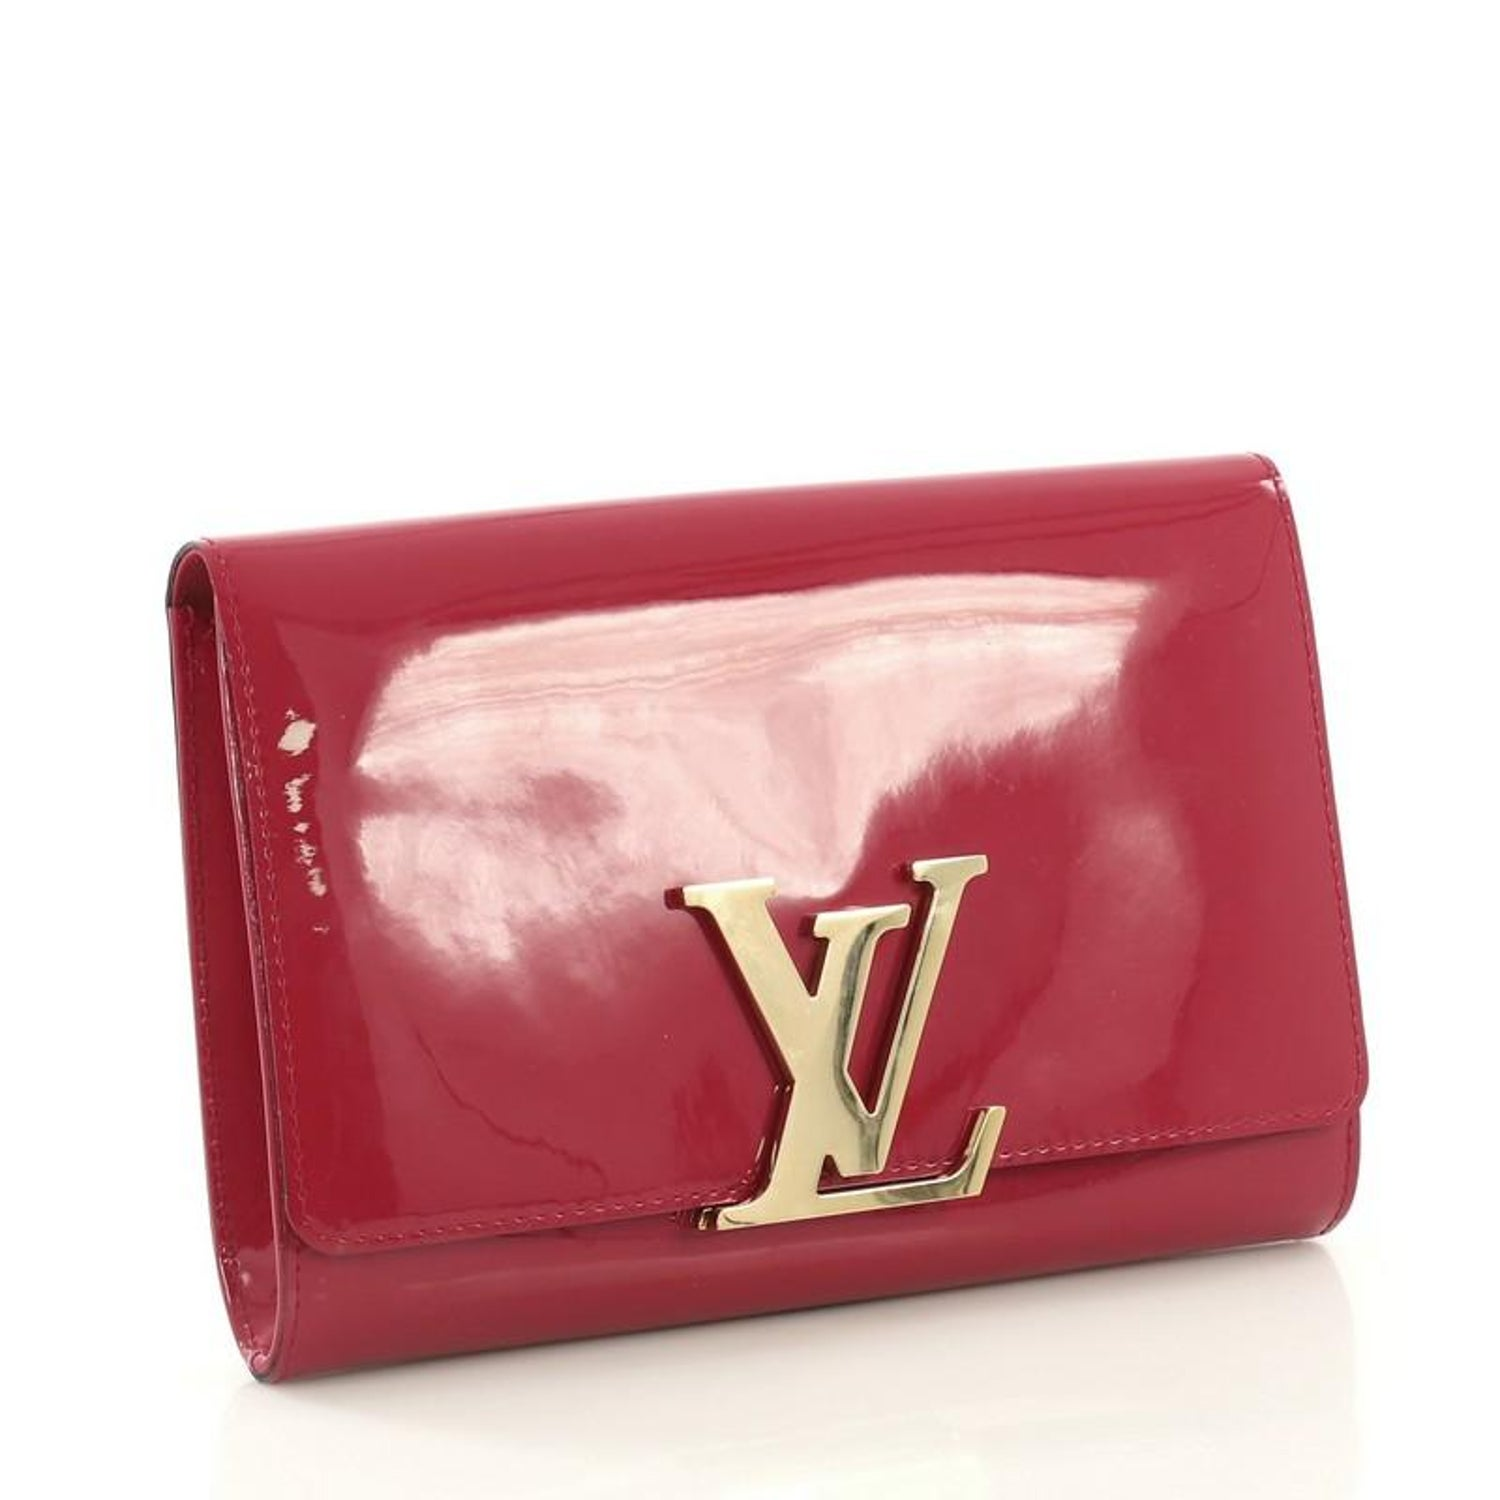 84f760499a78 Louis Vuitton Louise Clutch Patent MM at 1stdibs